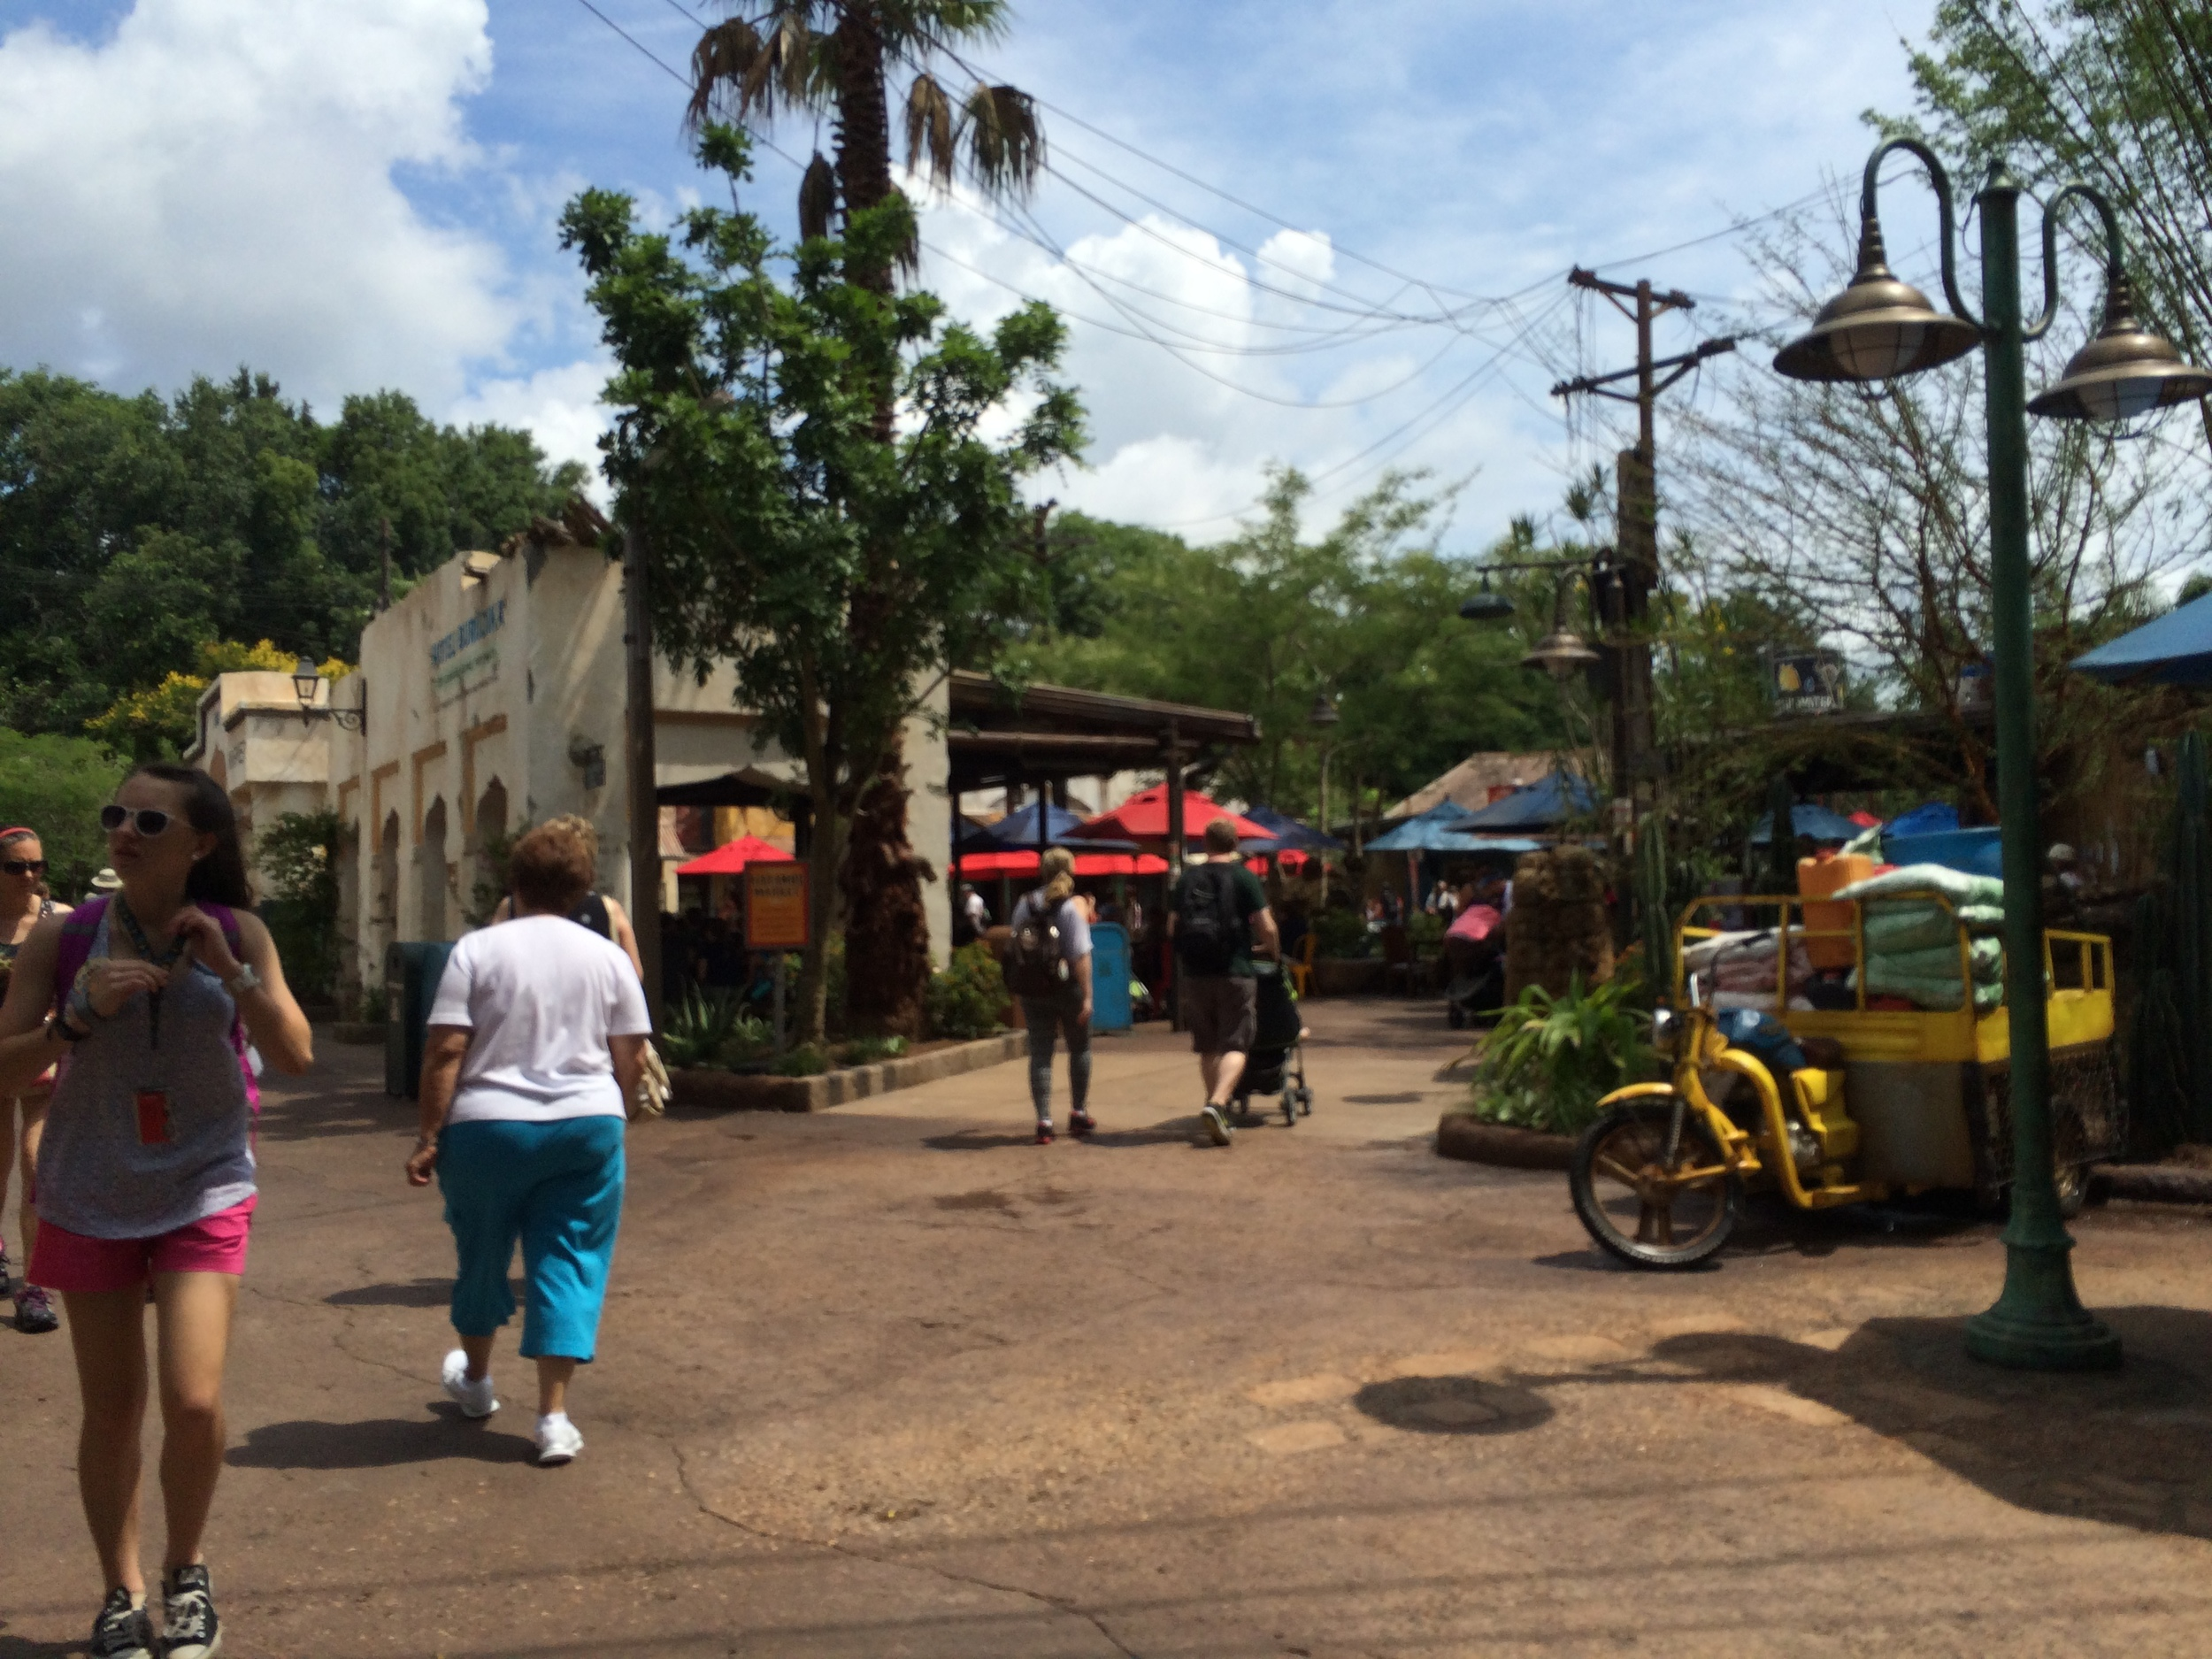 New side entrance that leads to this end of the Harambe Market.